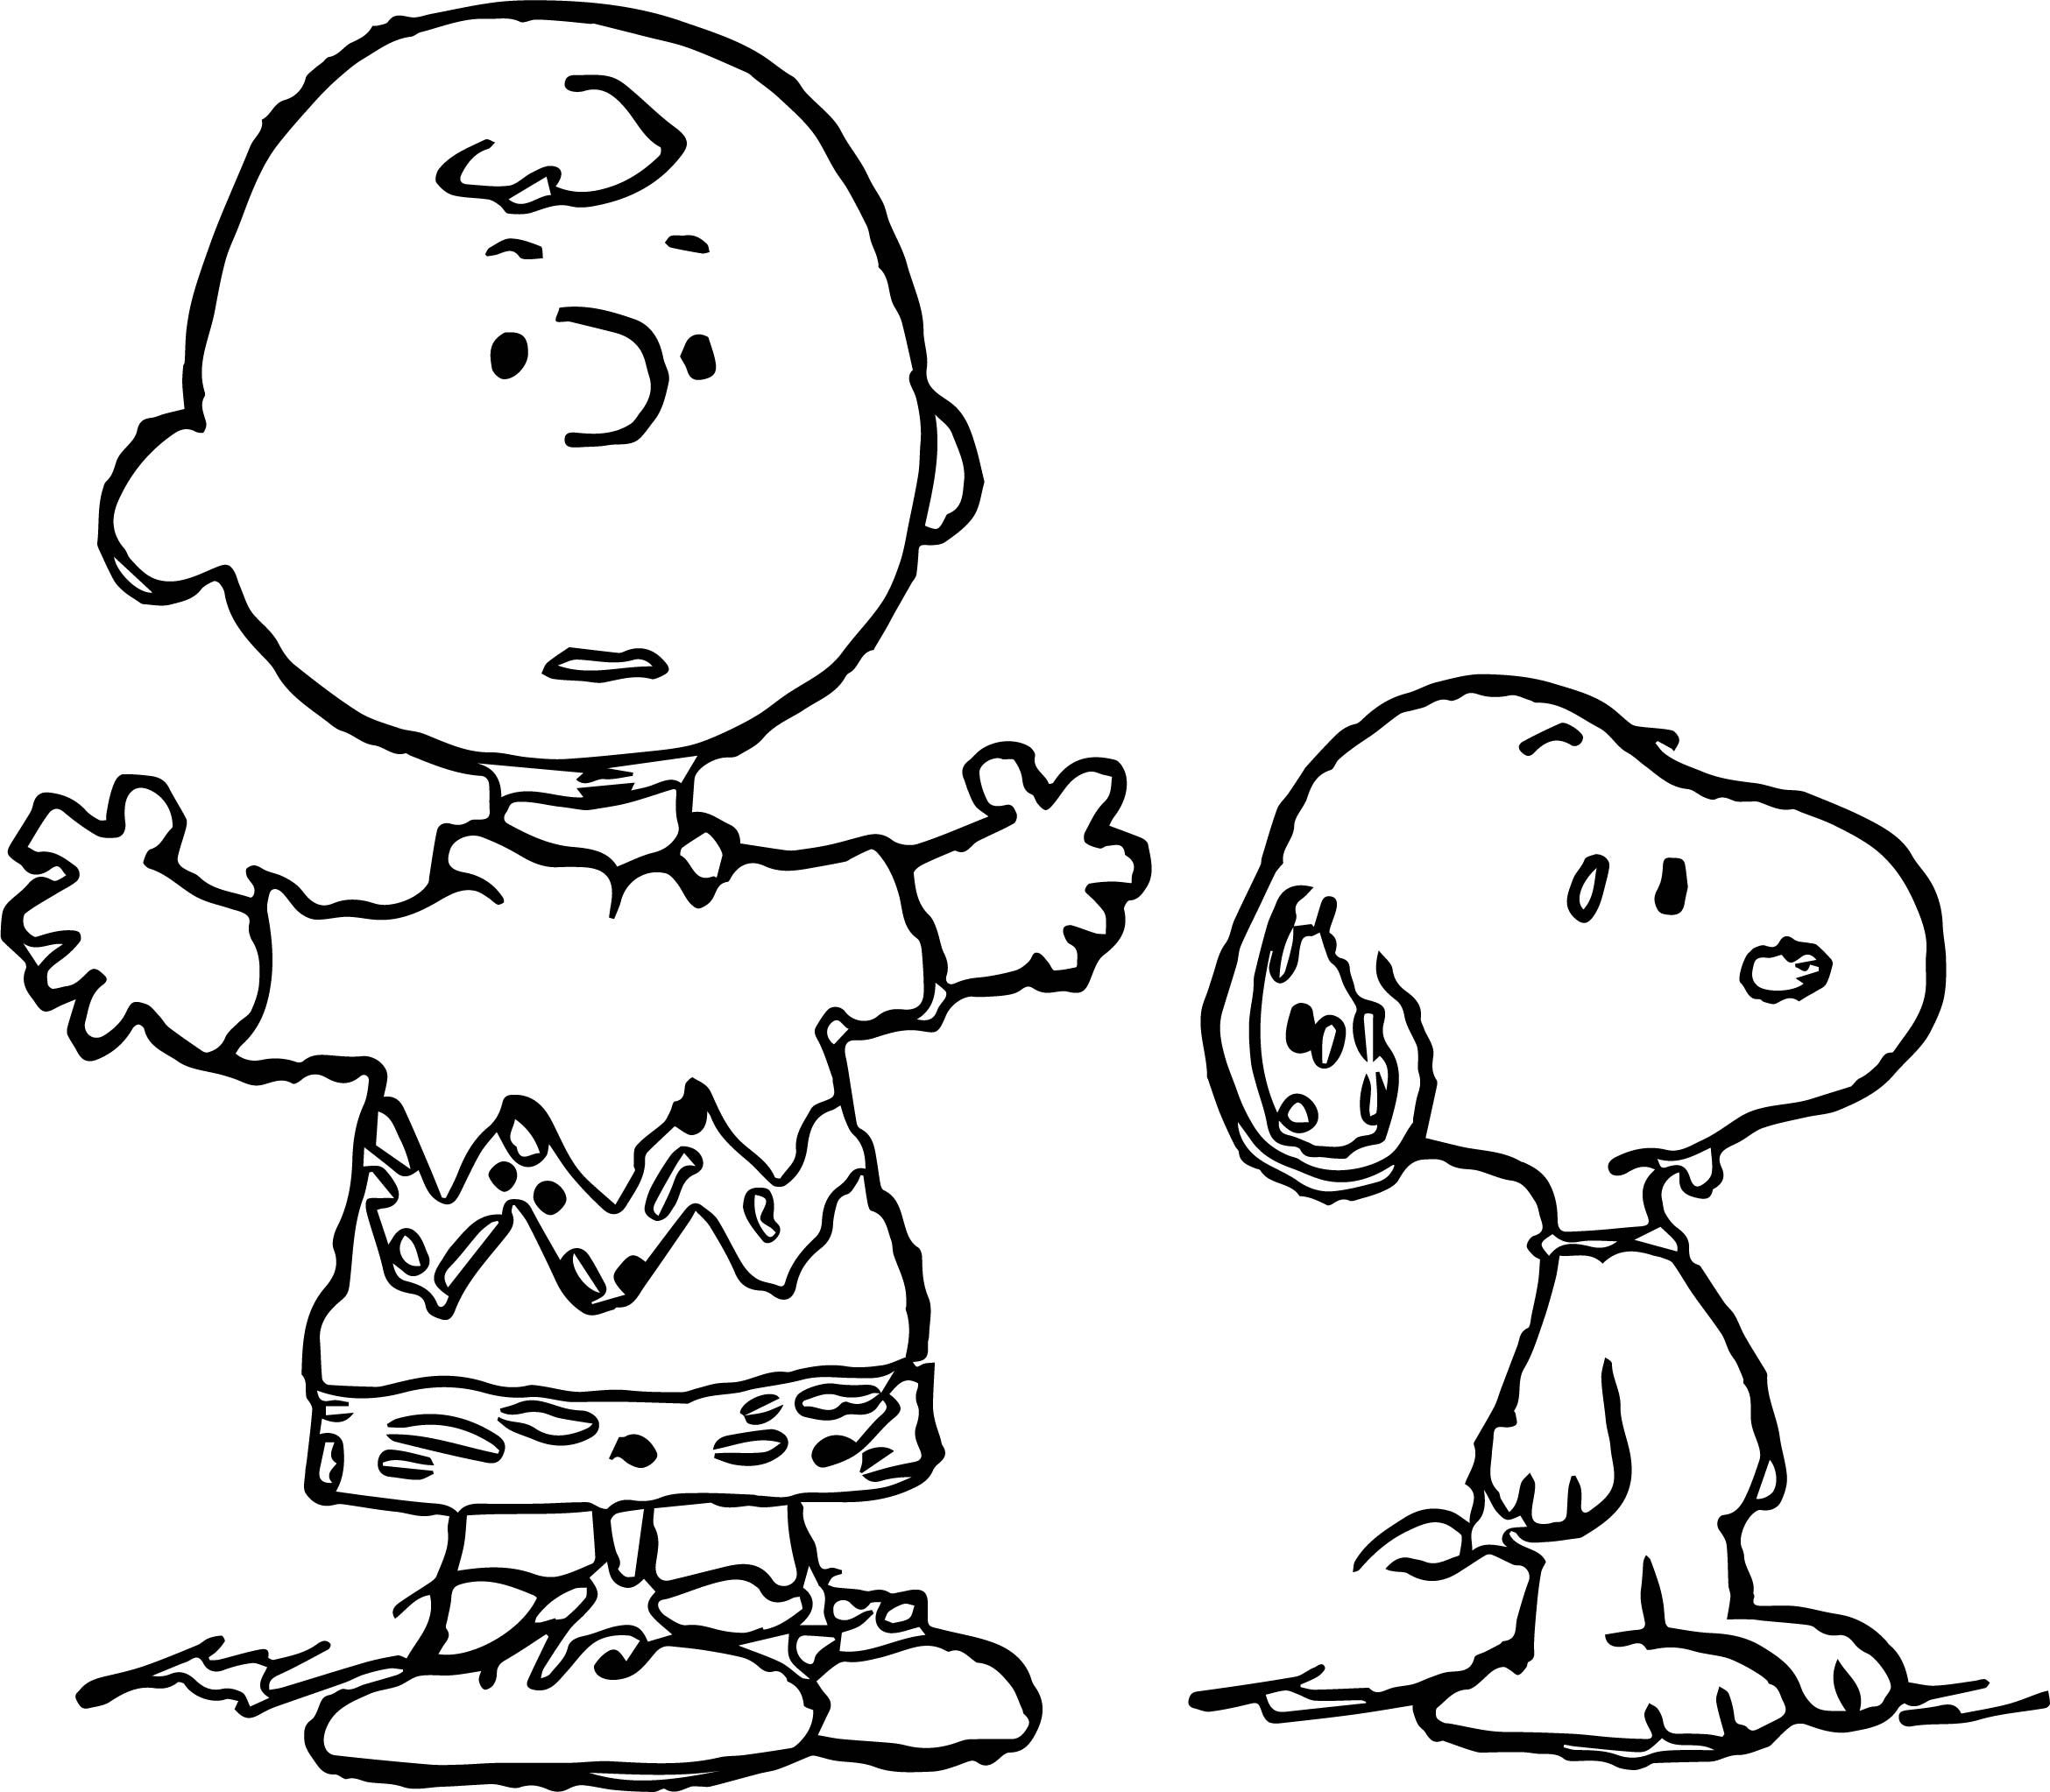 awesome Printable Snoopy Coloring Pages Snoopy coloring